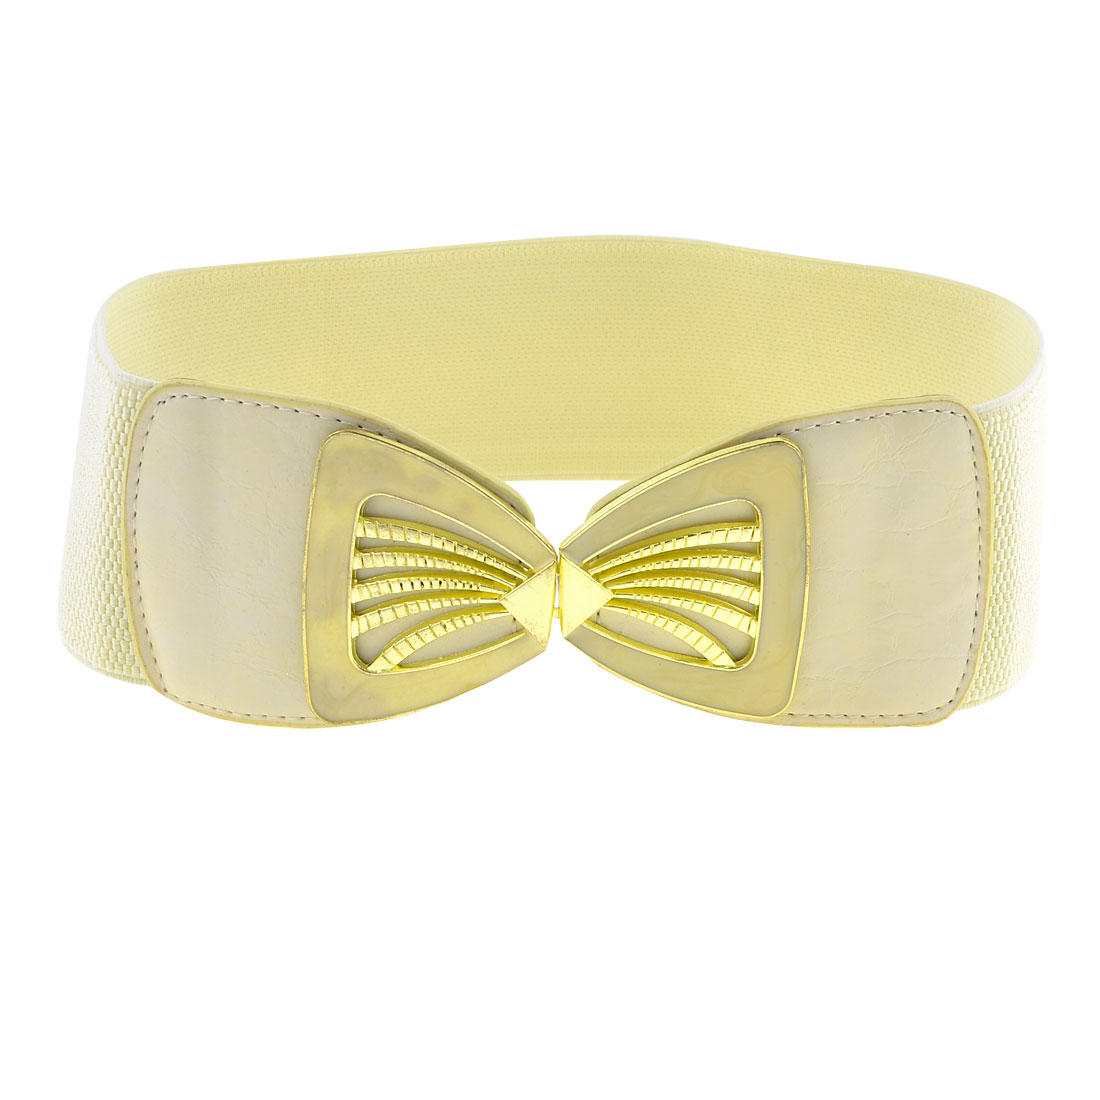 White Elastic Band Gold Tone Hollow Out Seashell Shape Buckle Belt for Ladies